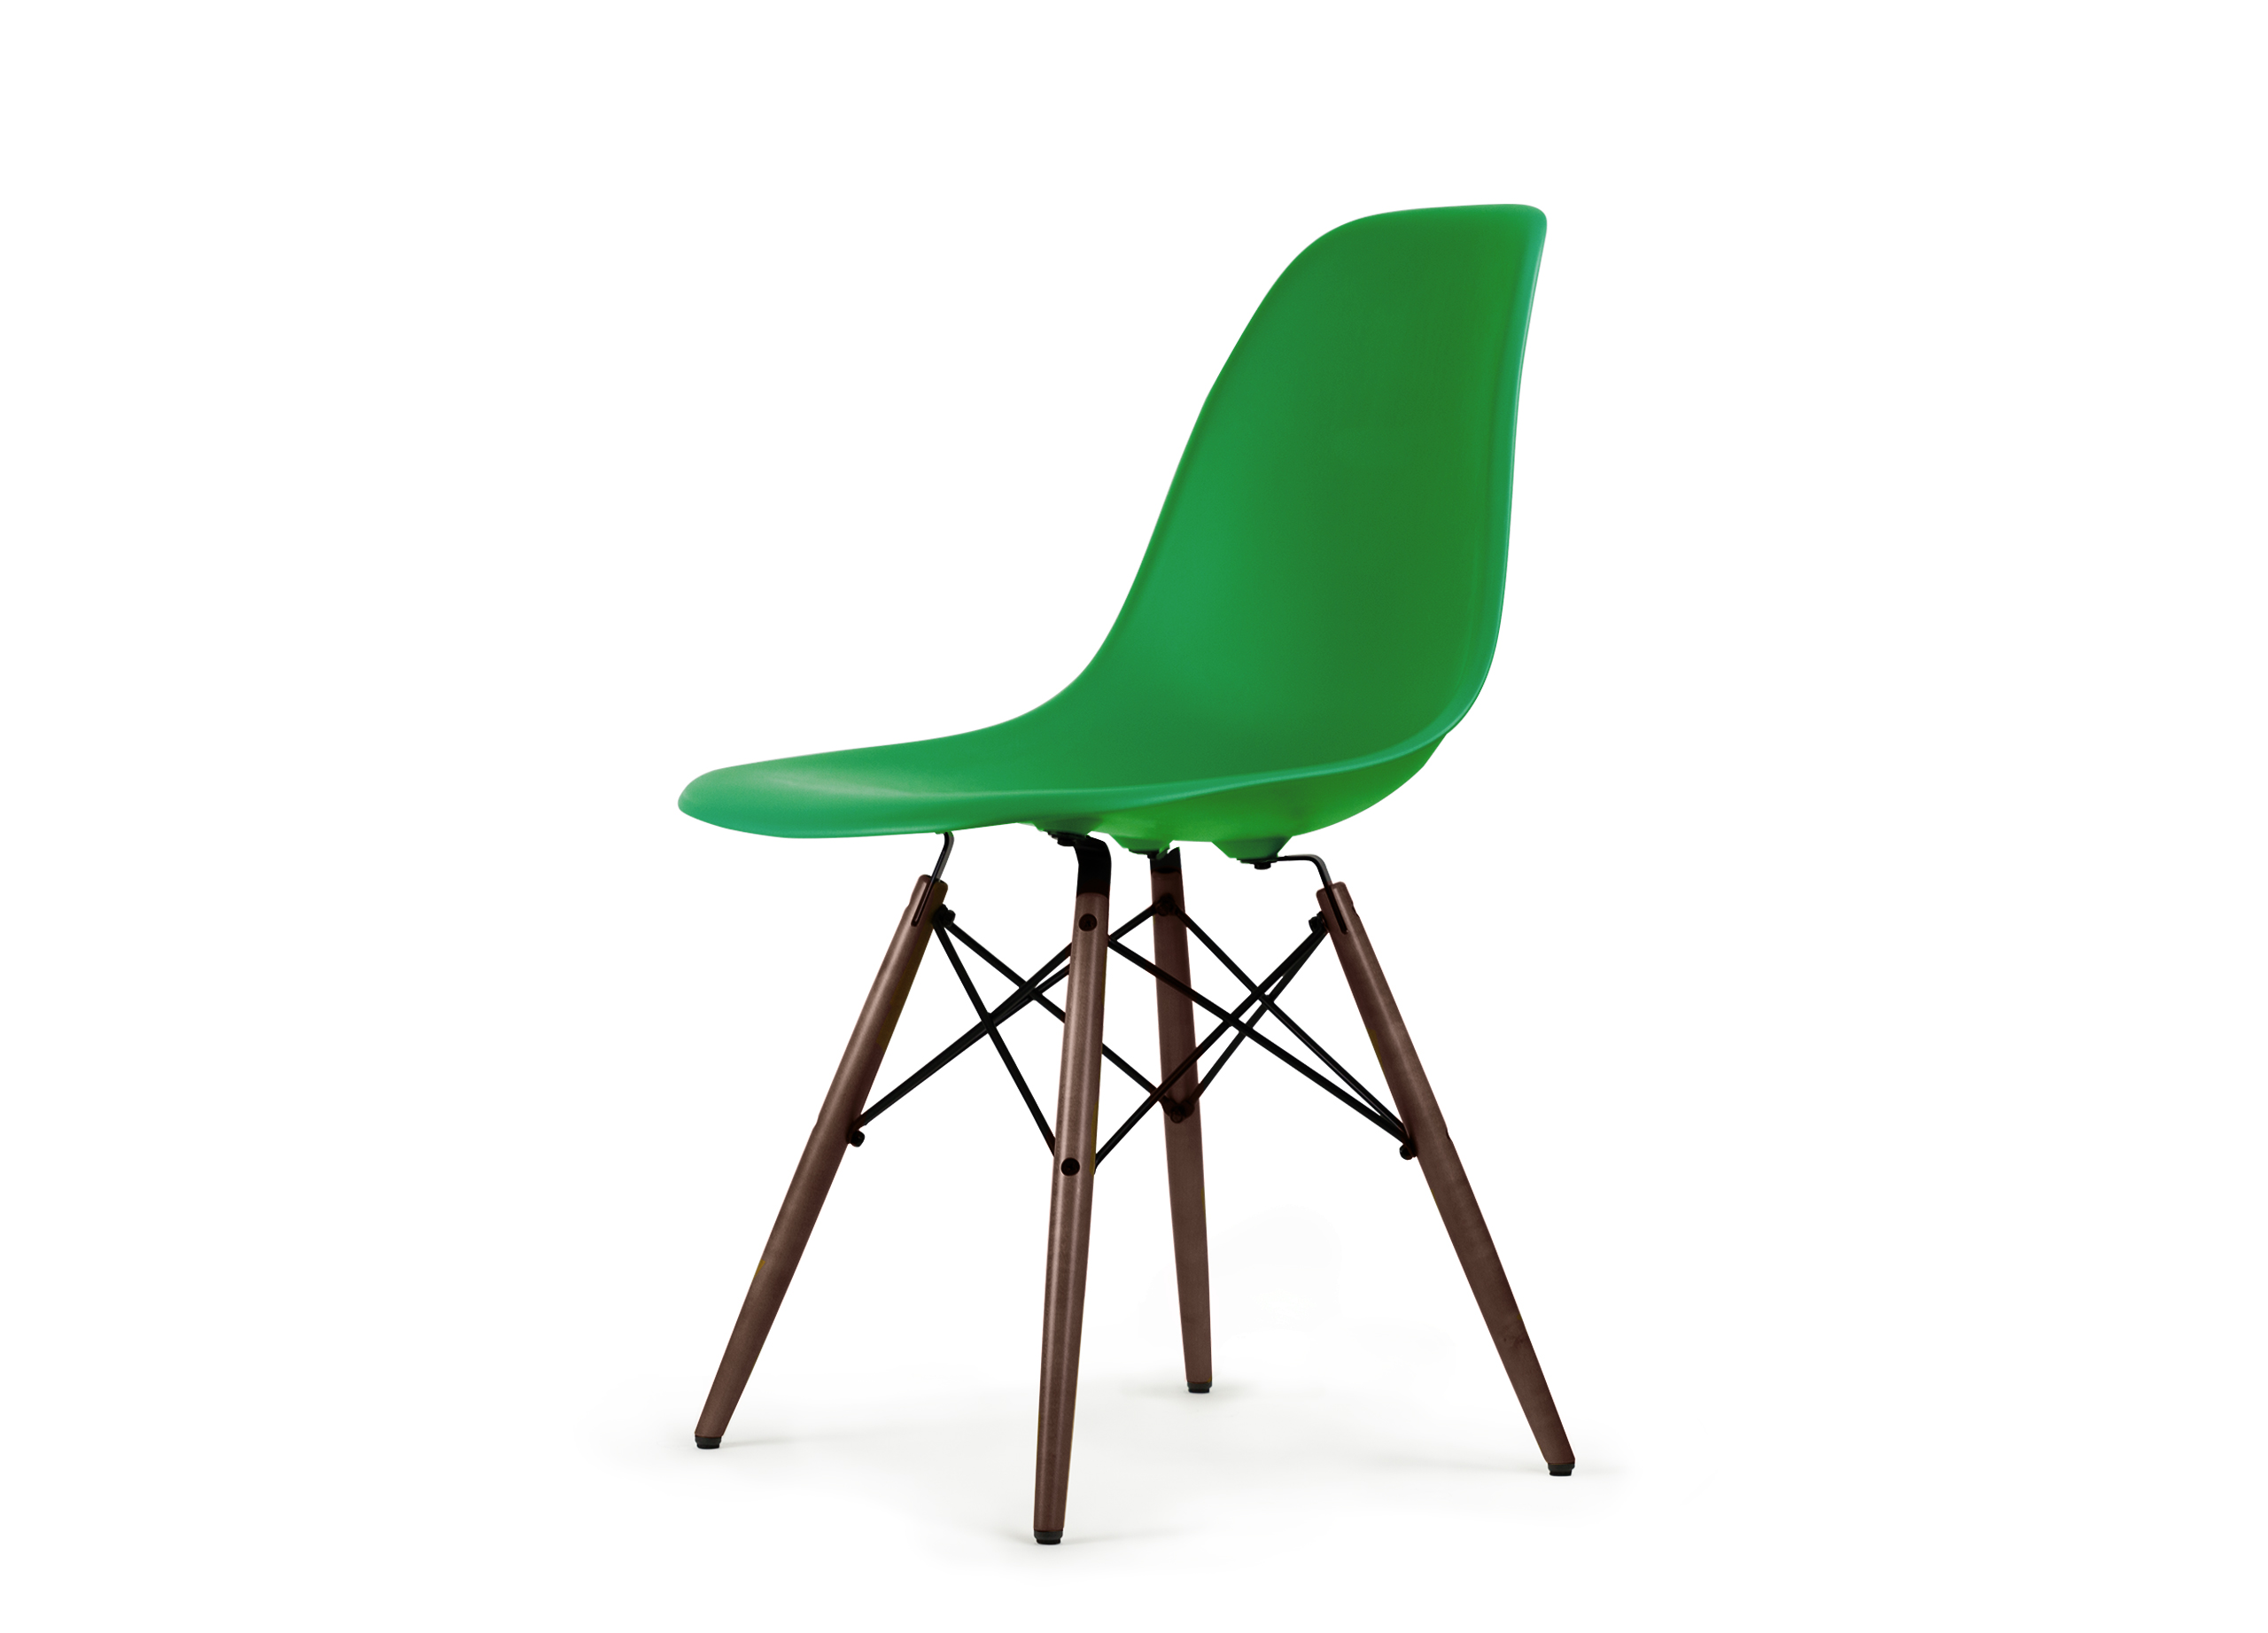 Vitra dsw eames plastic side chair the qvest shop for Vitra eames reproduktion